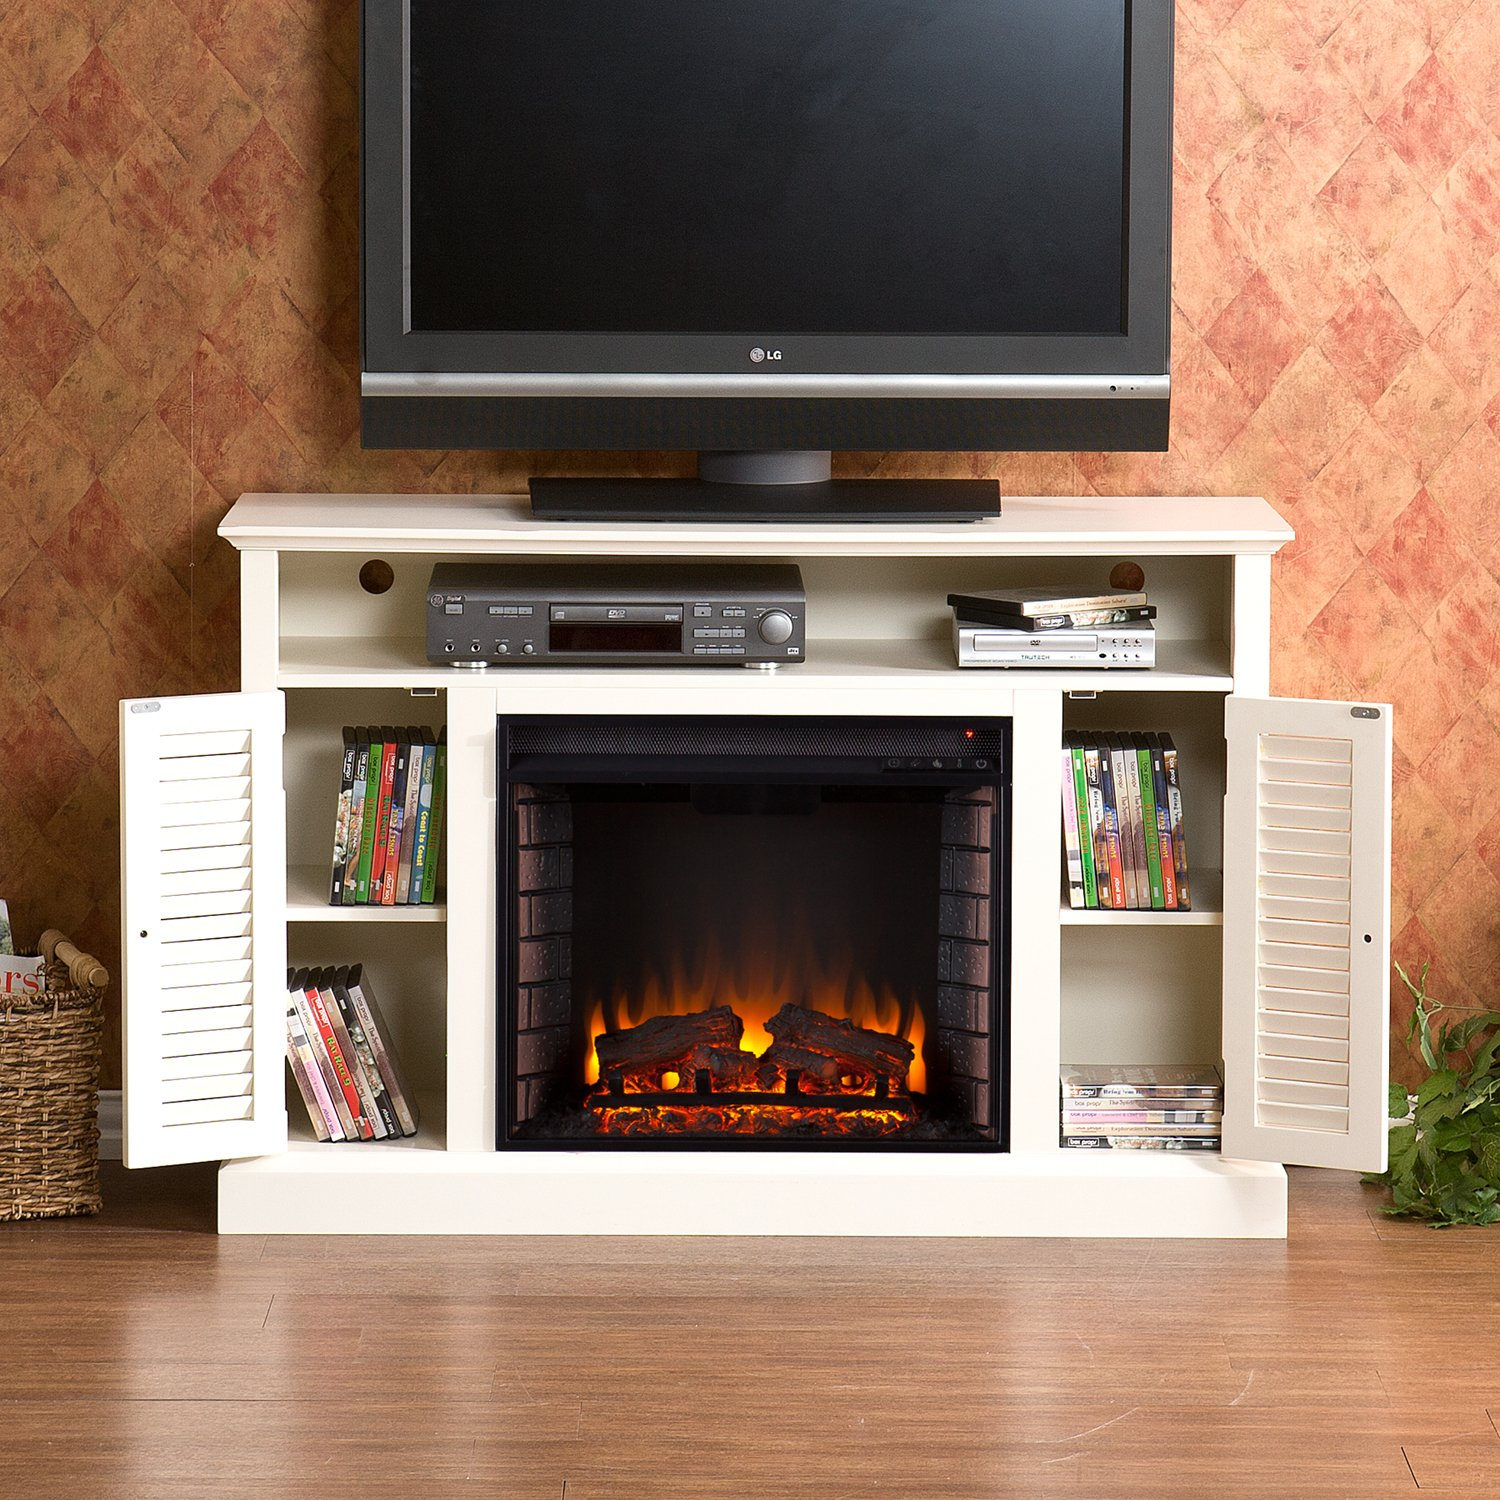 pdp reviews furniture wilson wayfair fireplace tv stand electric ca media homestar